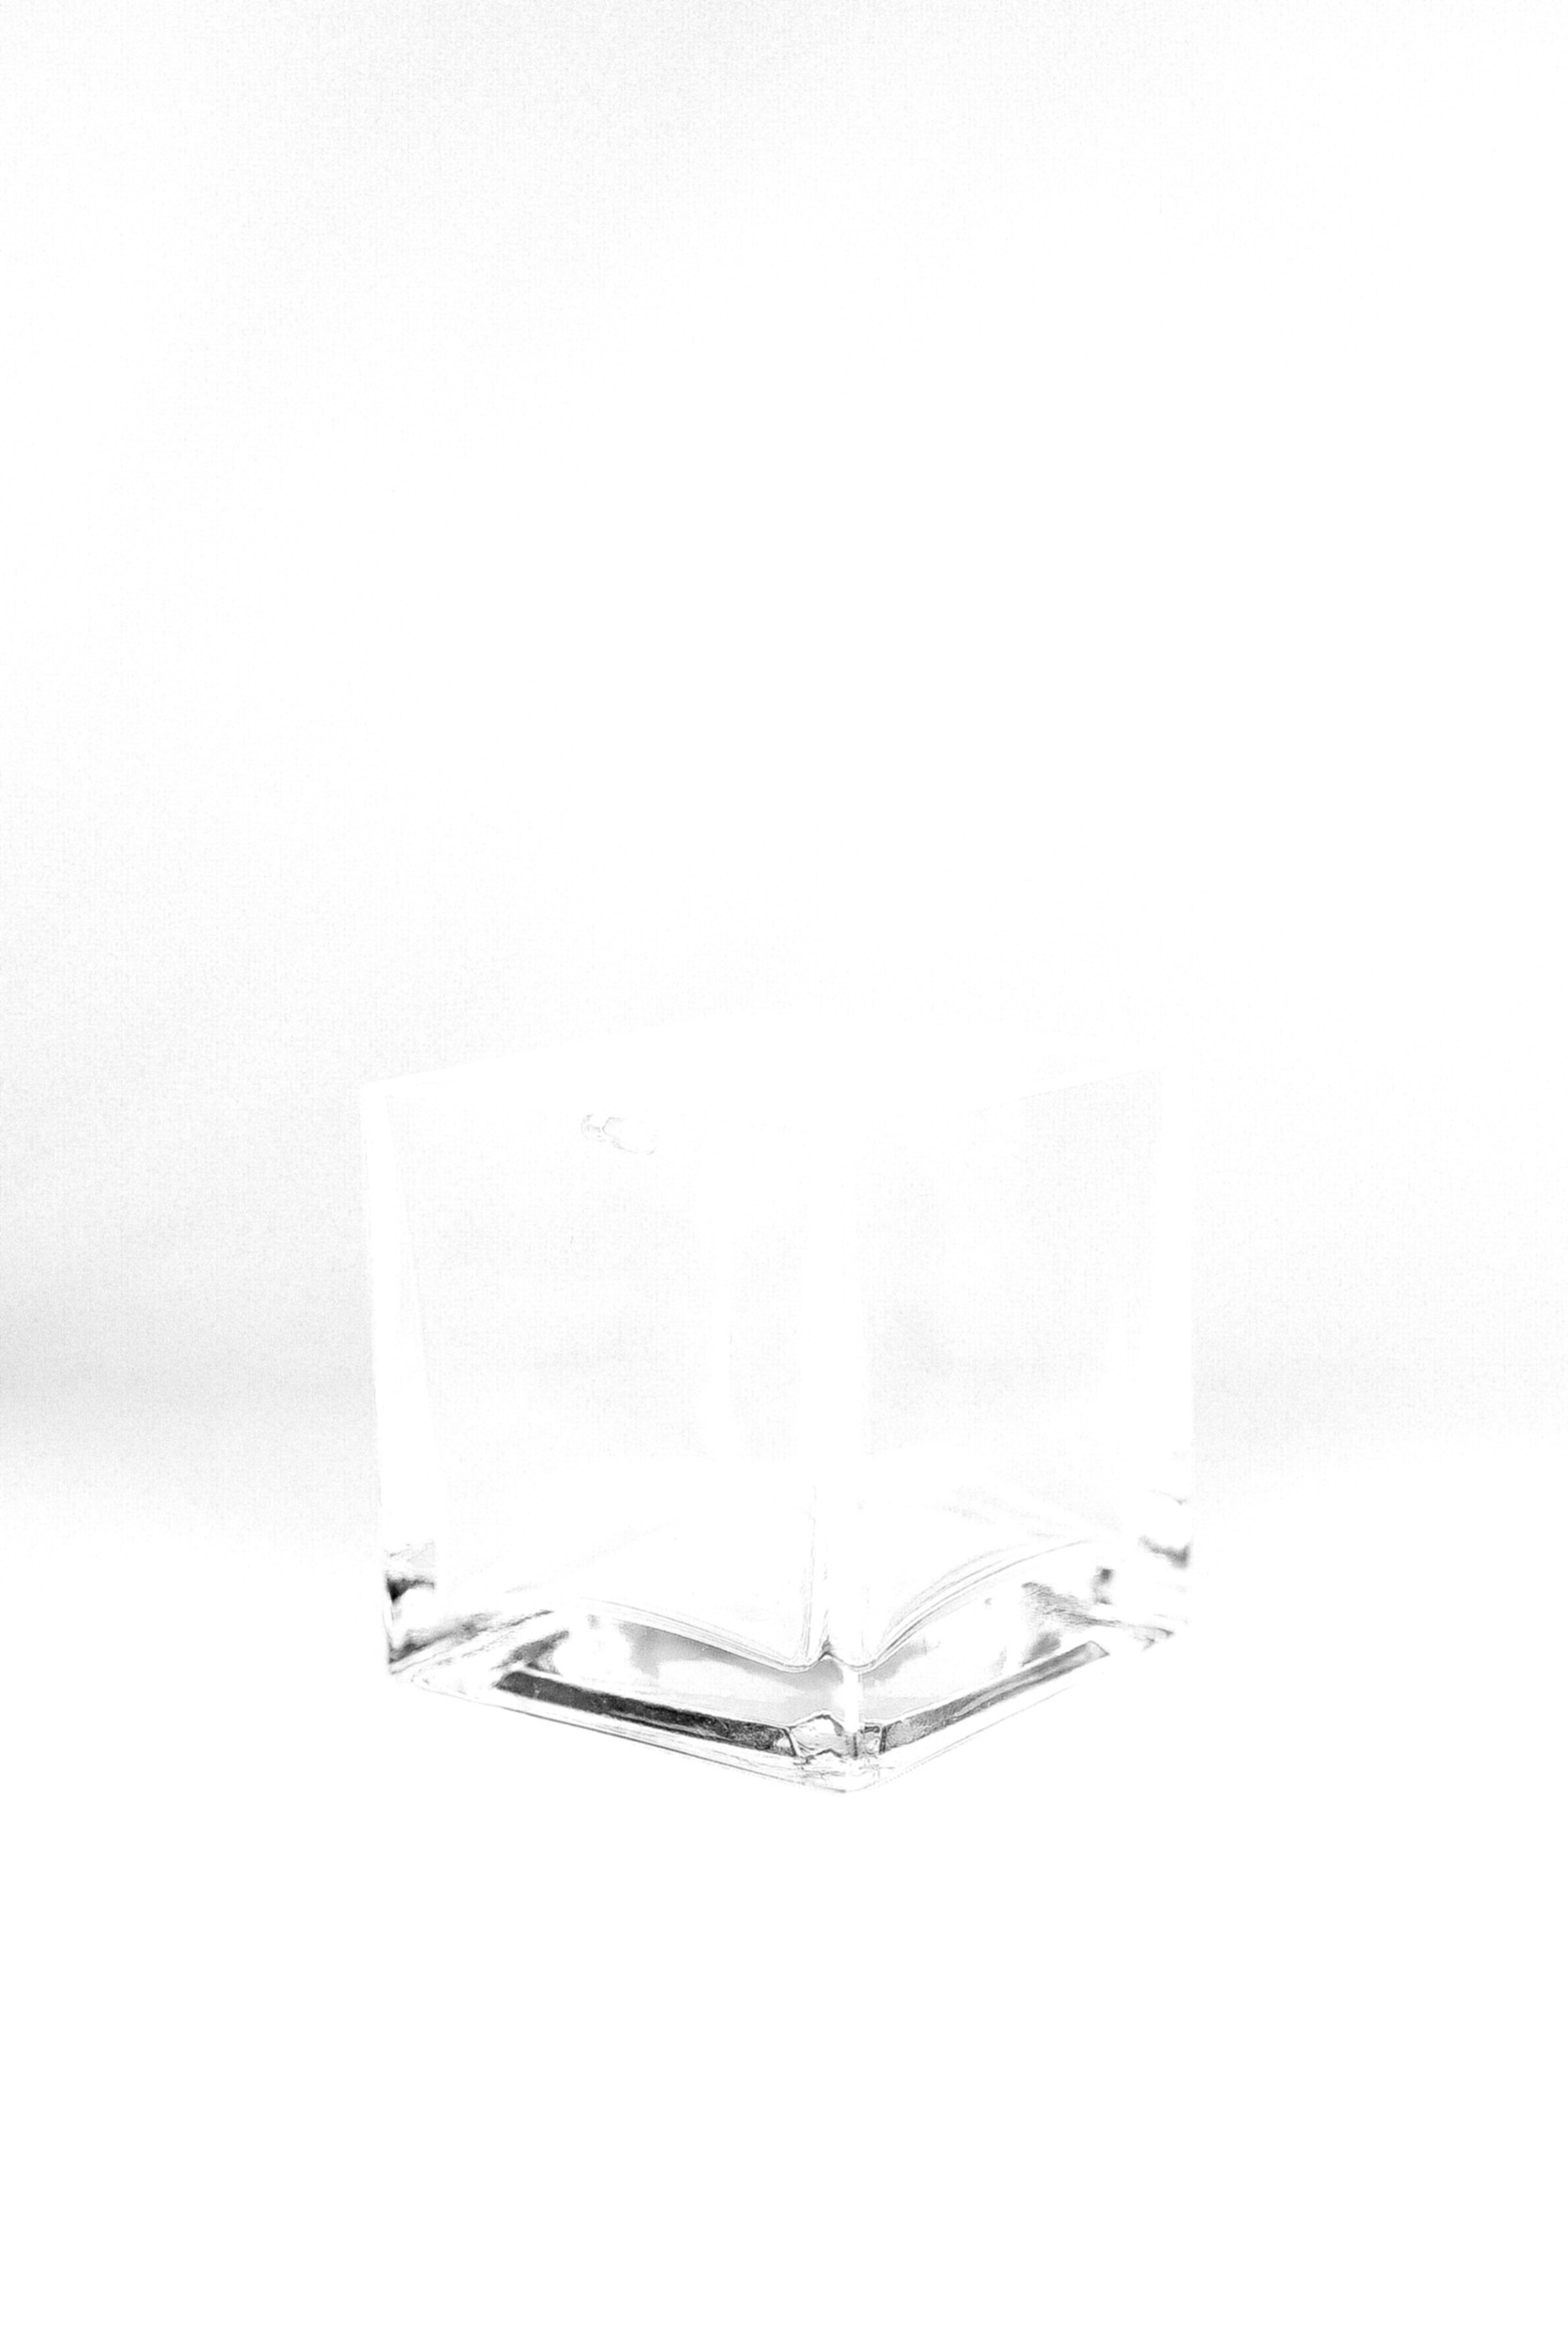 6 x 6 glass cube vases of square vases 6″ set of 12 abc glassware square glass vases intended for square vases 6″ set of 12 abc glassware square glass vases pictures